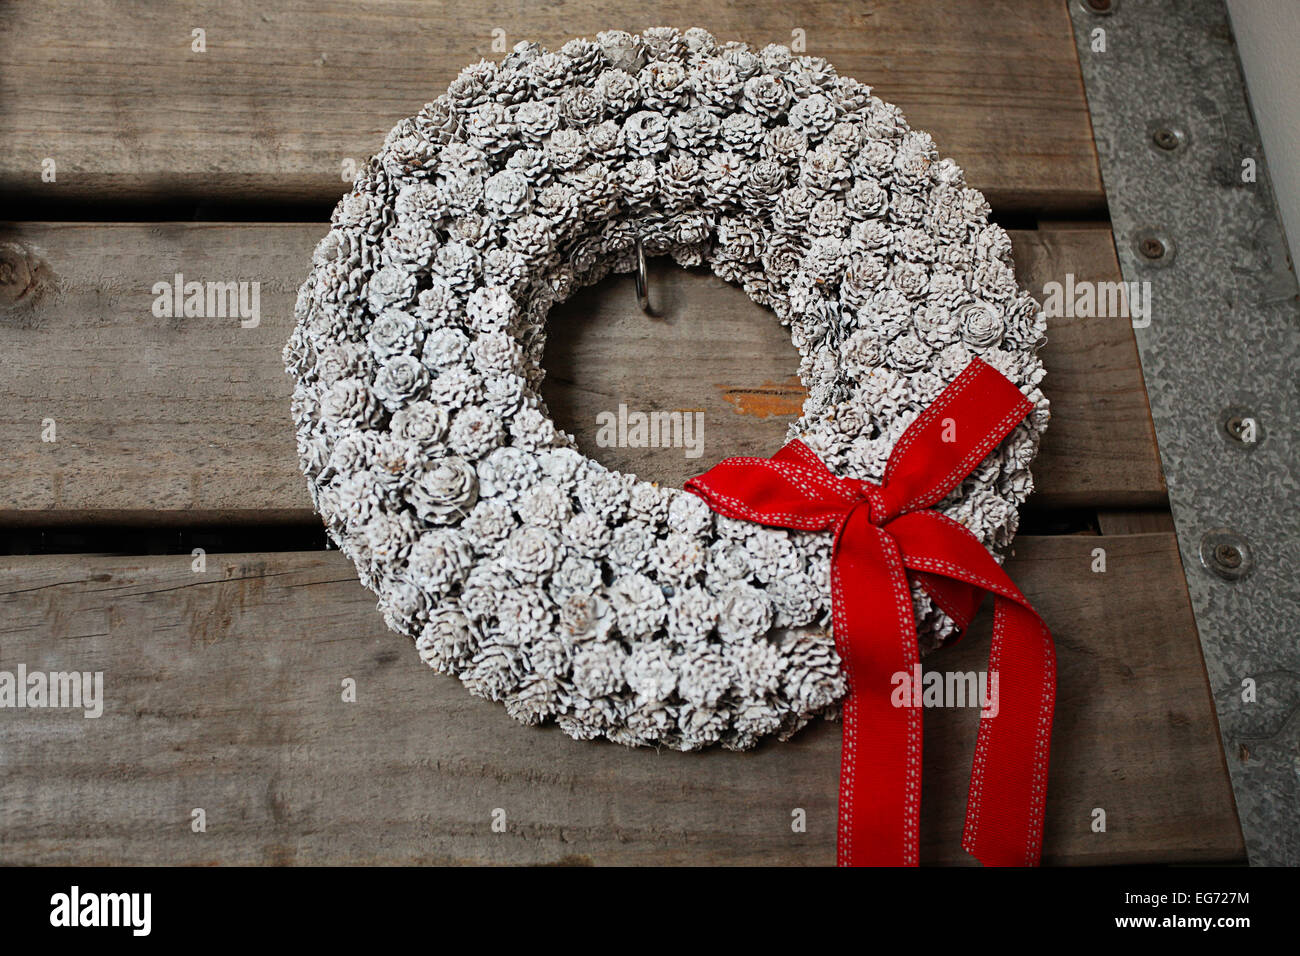 Homemade Christmas wreath with red bow - Stock Image